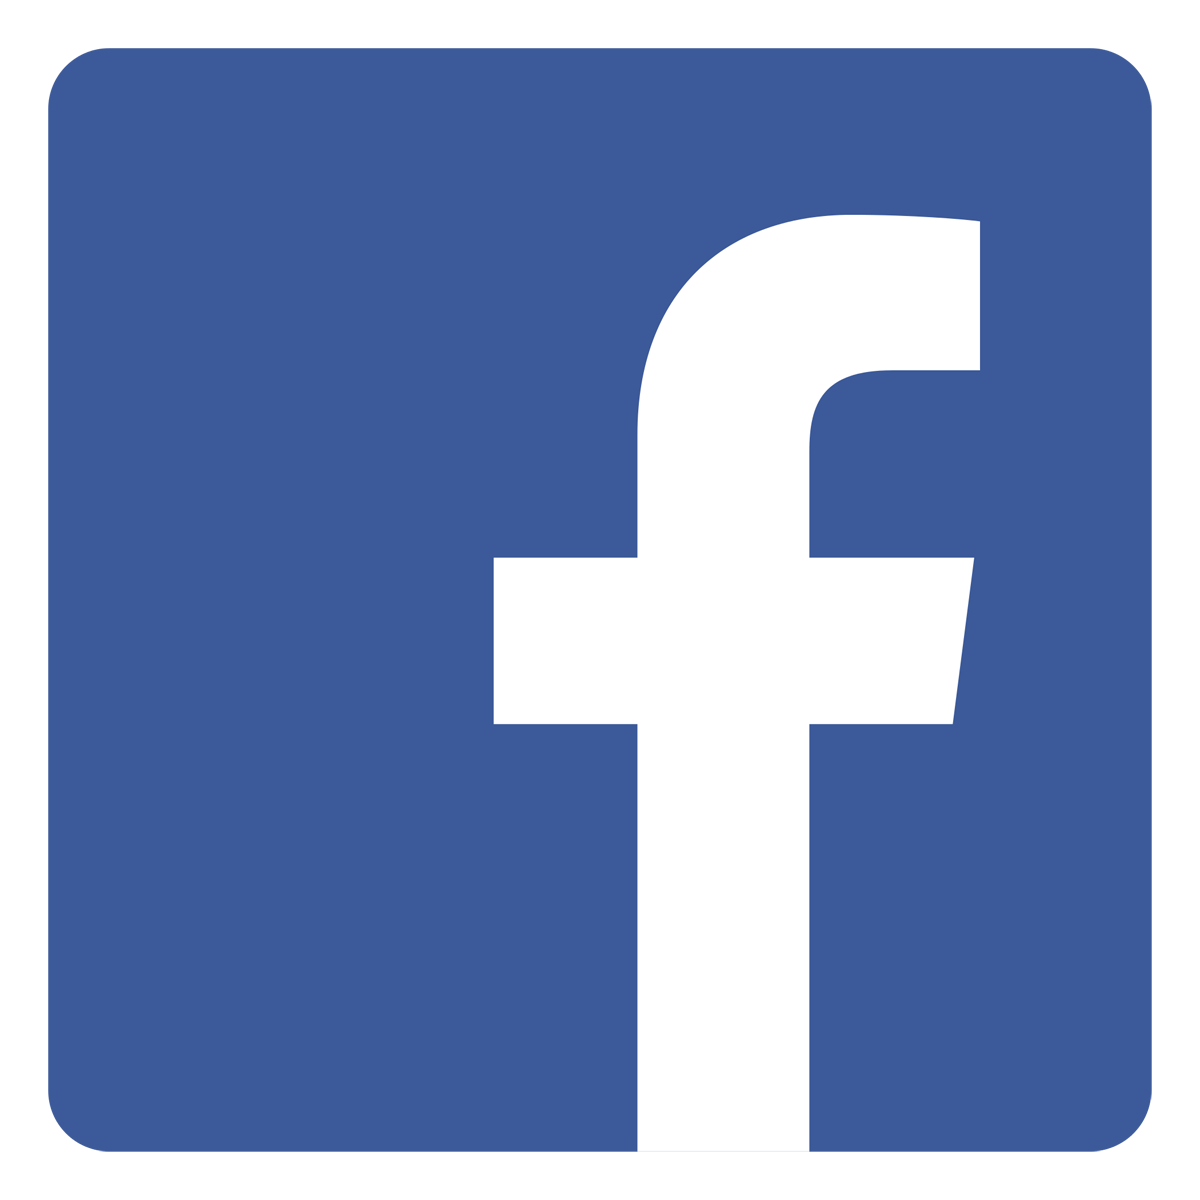 Old Facebook Logo PNG Design #32243